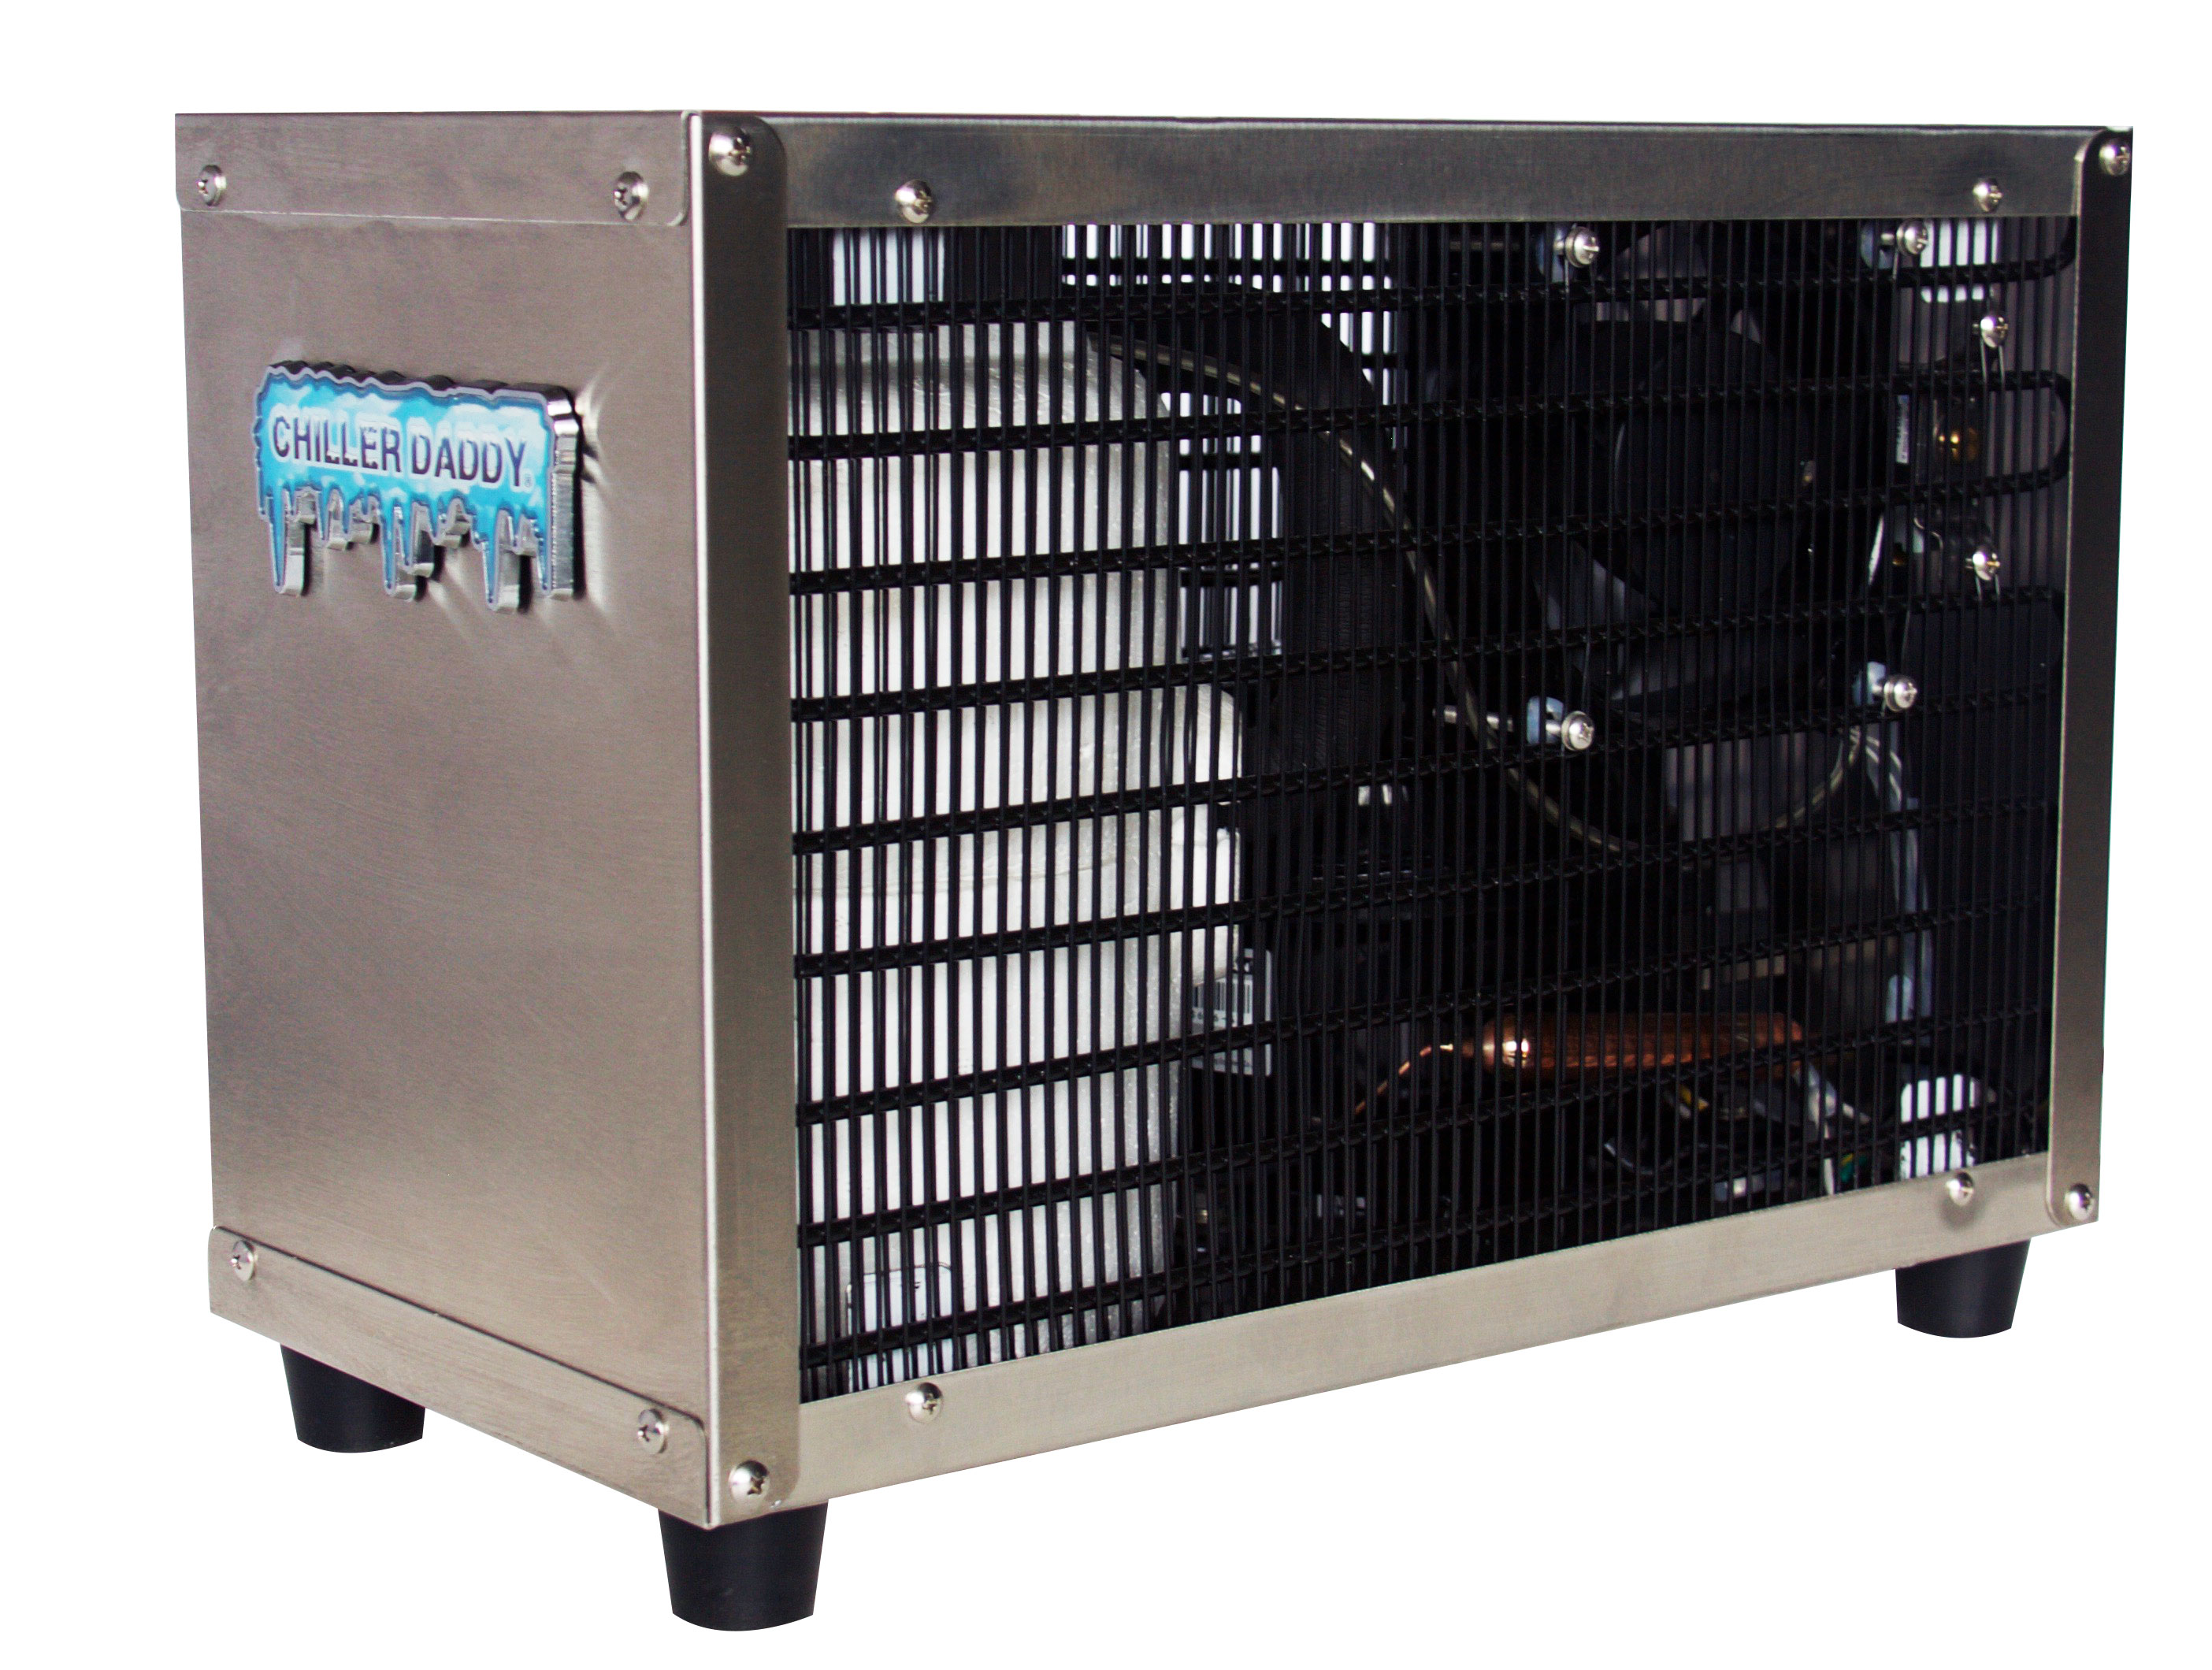 Chiller Daddy under counter water chiller SUS304 stainless steel under counter water chiller is perfect for reverse osmosis RO drinking water systems